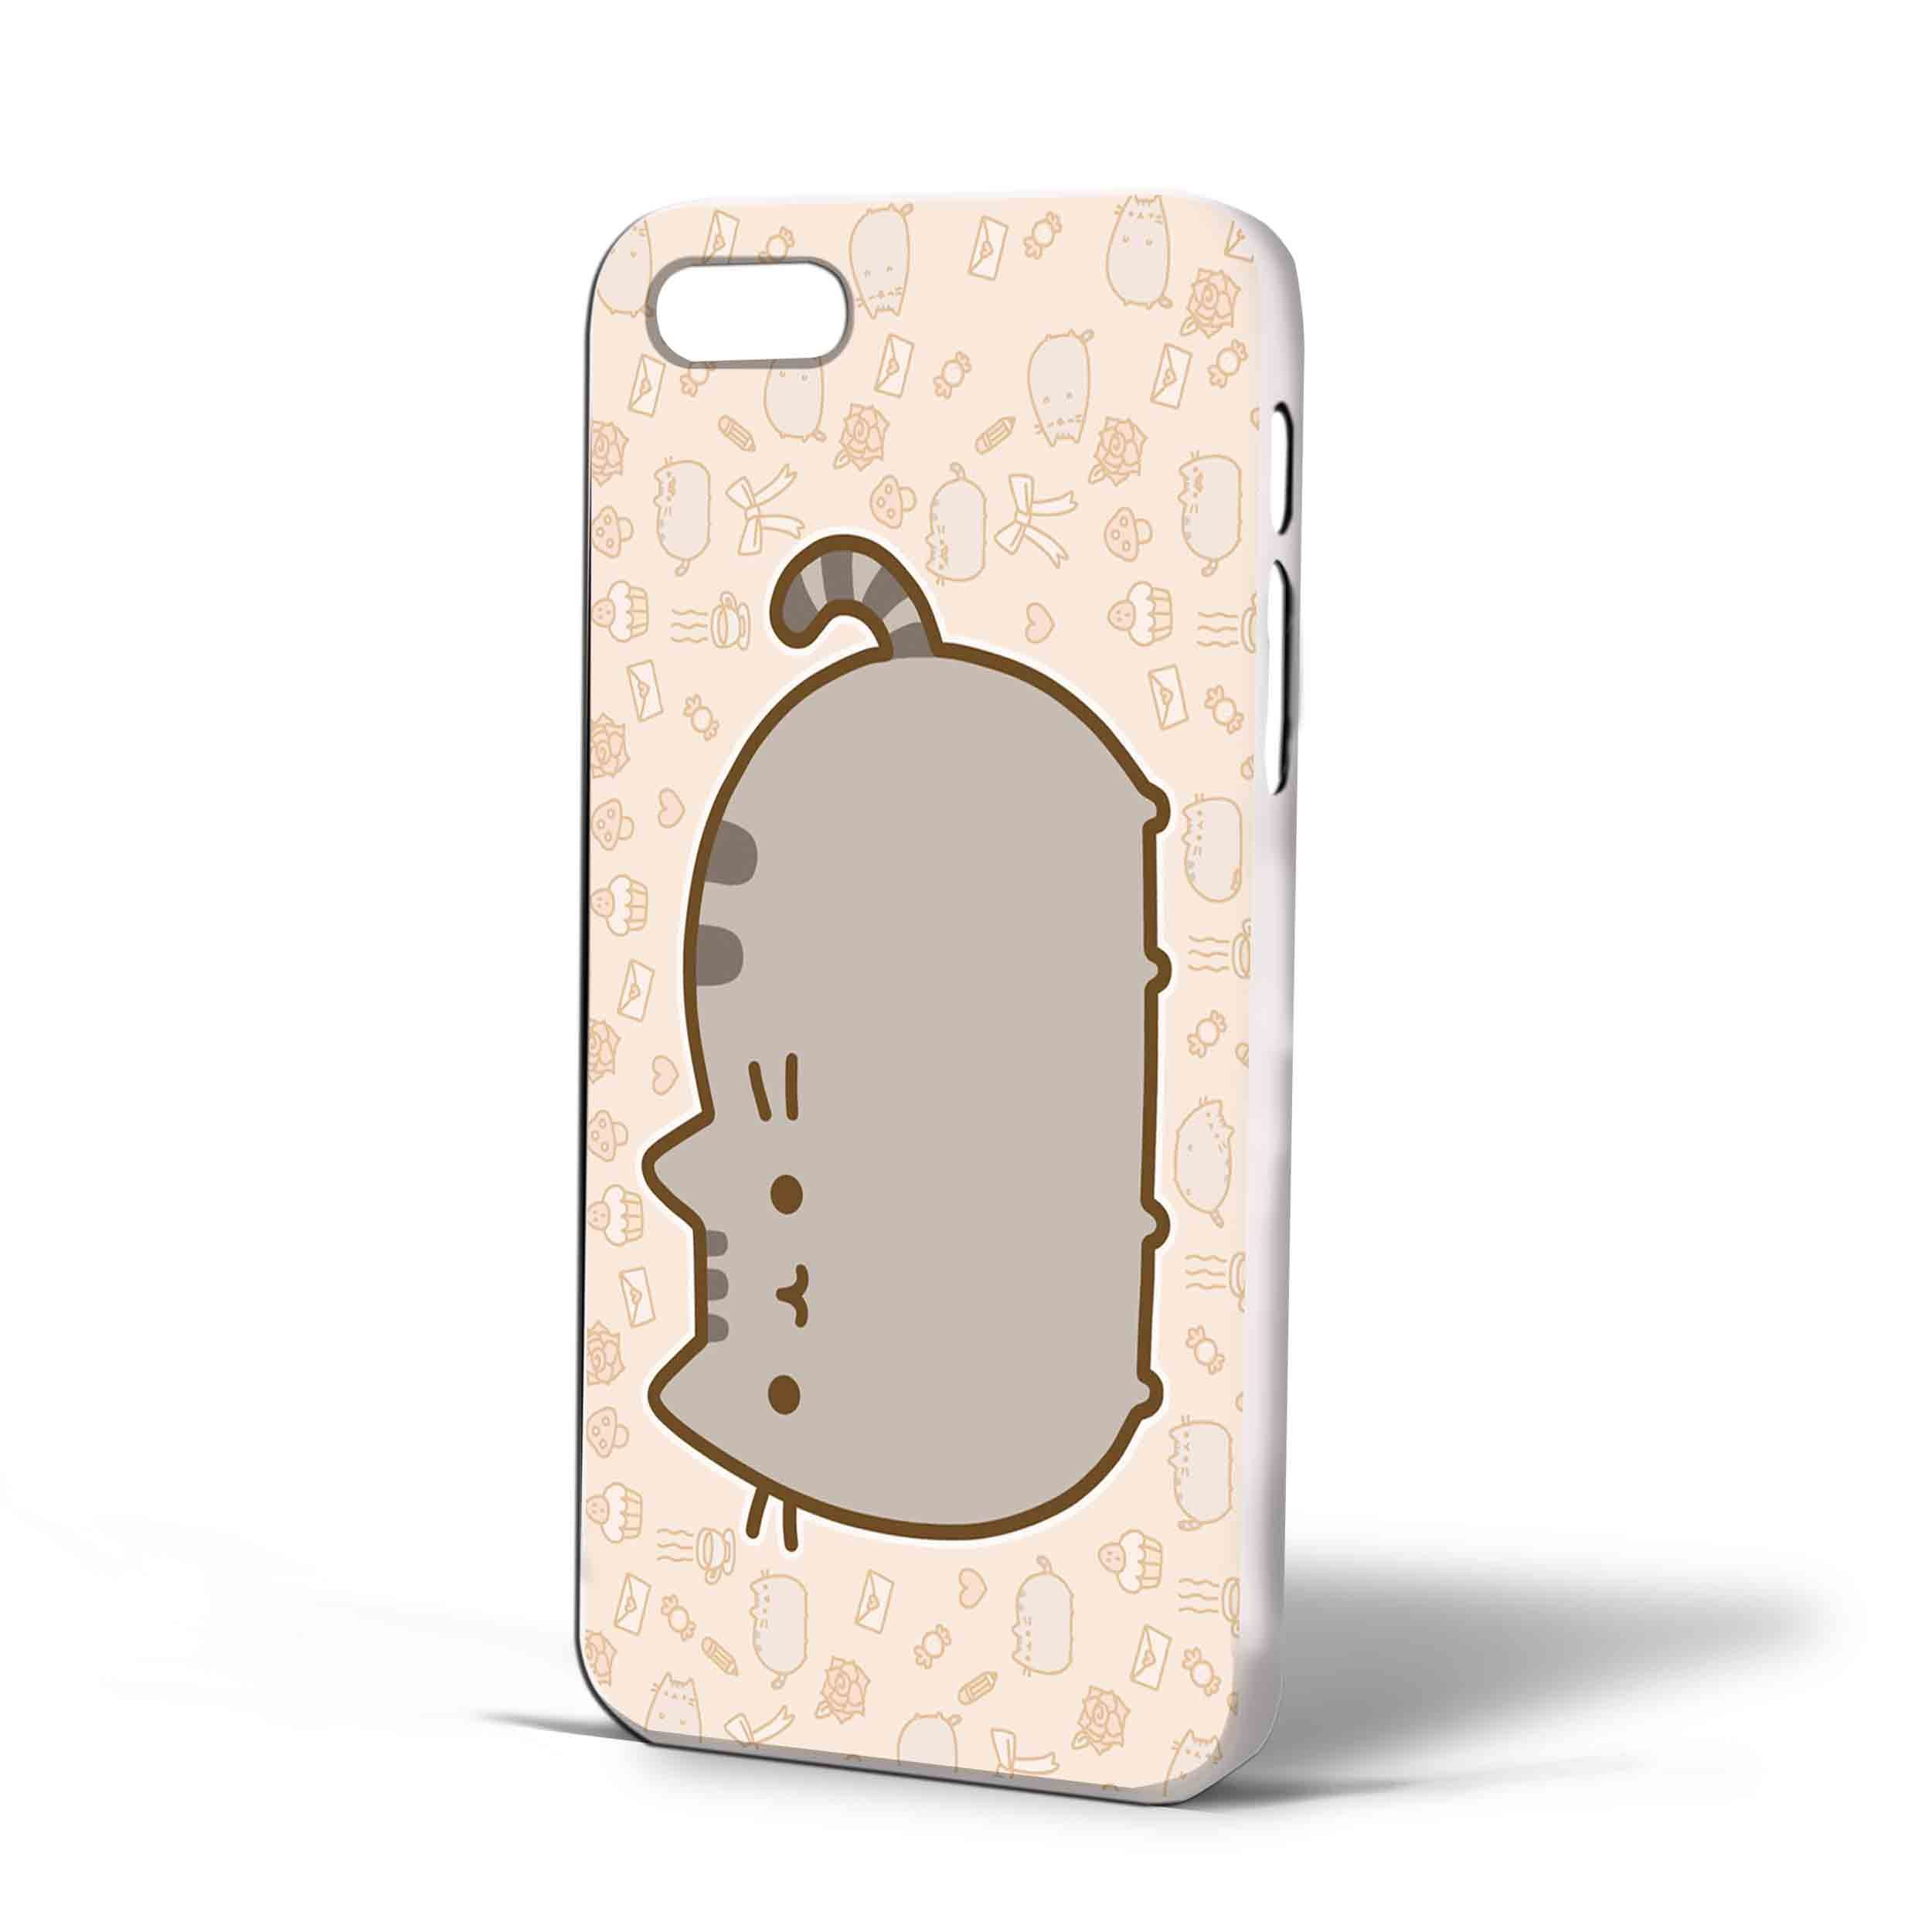 brand new eb571 6a950 Amazon.com: Pusheen Cat for Iphone Case (iPhone 6s White ...